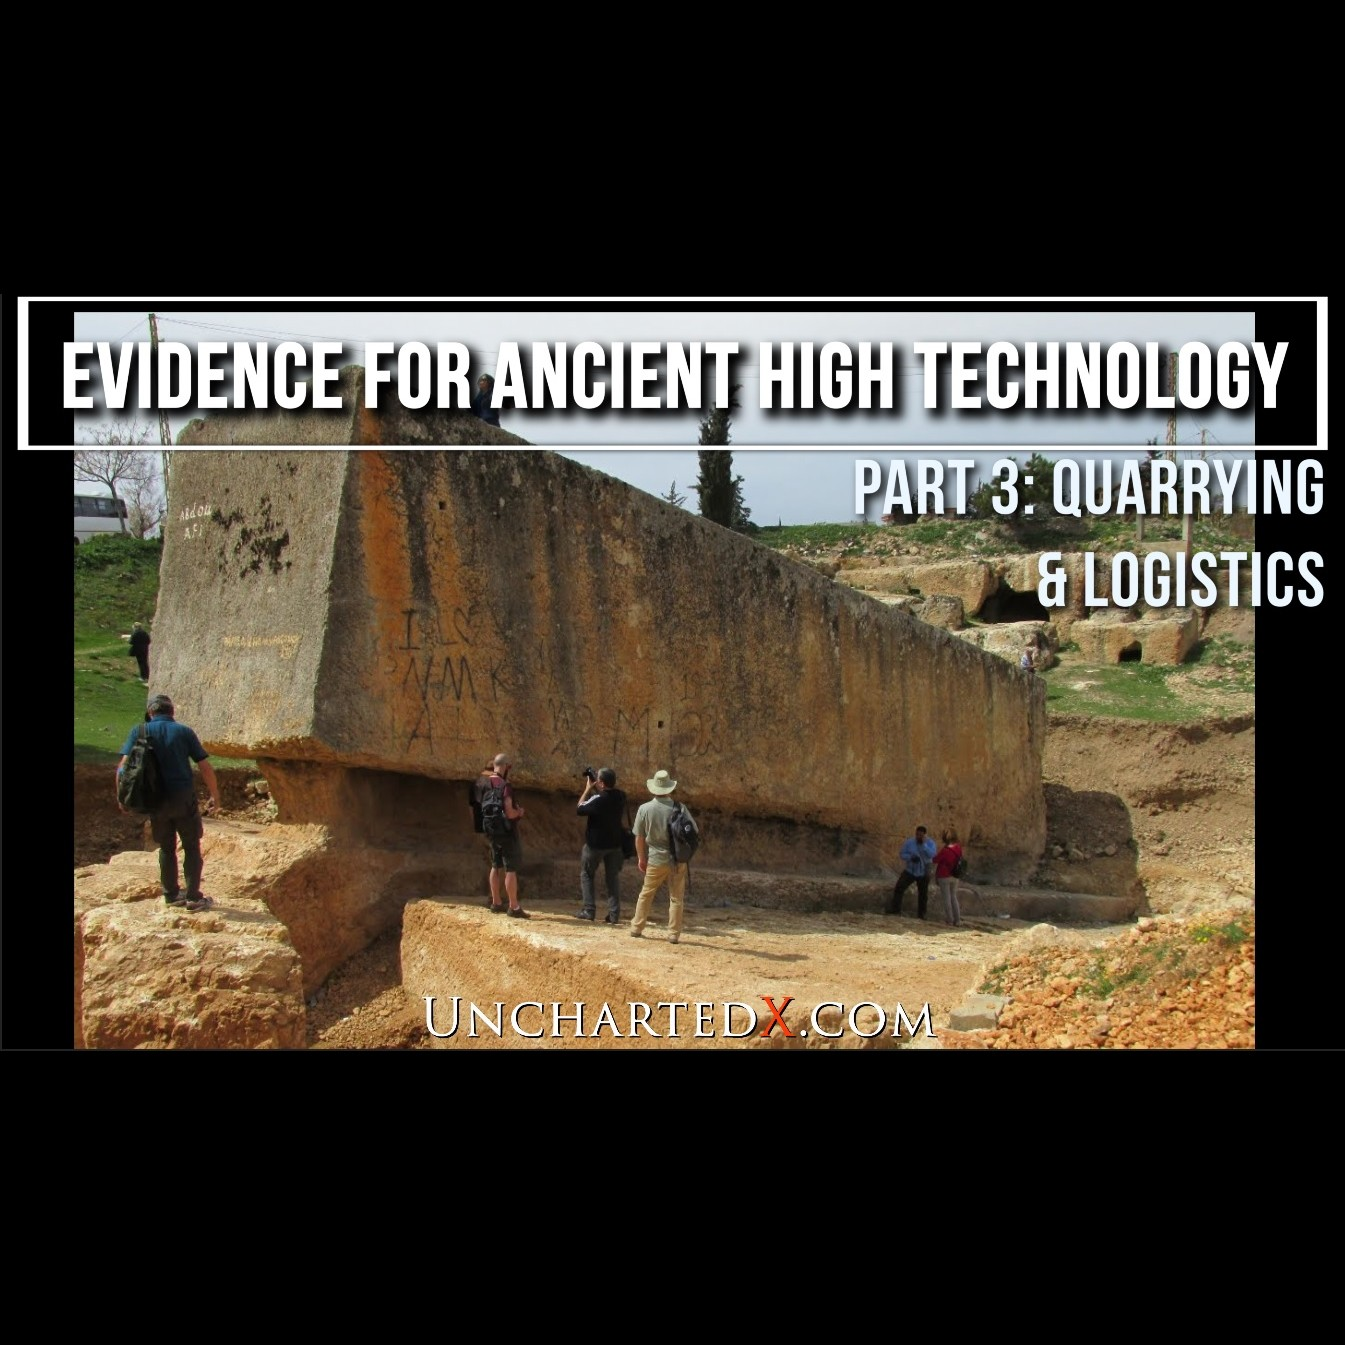 017: Quarrying and Logistics! The Evidence for Ancient High Technology - Part 3